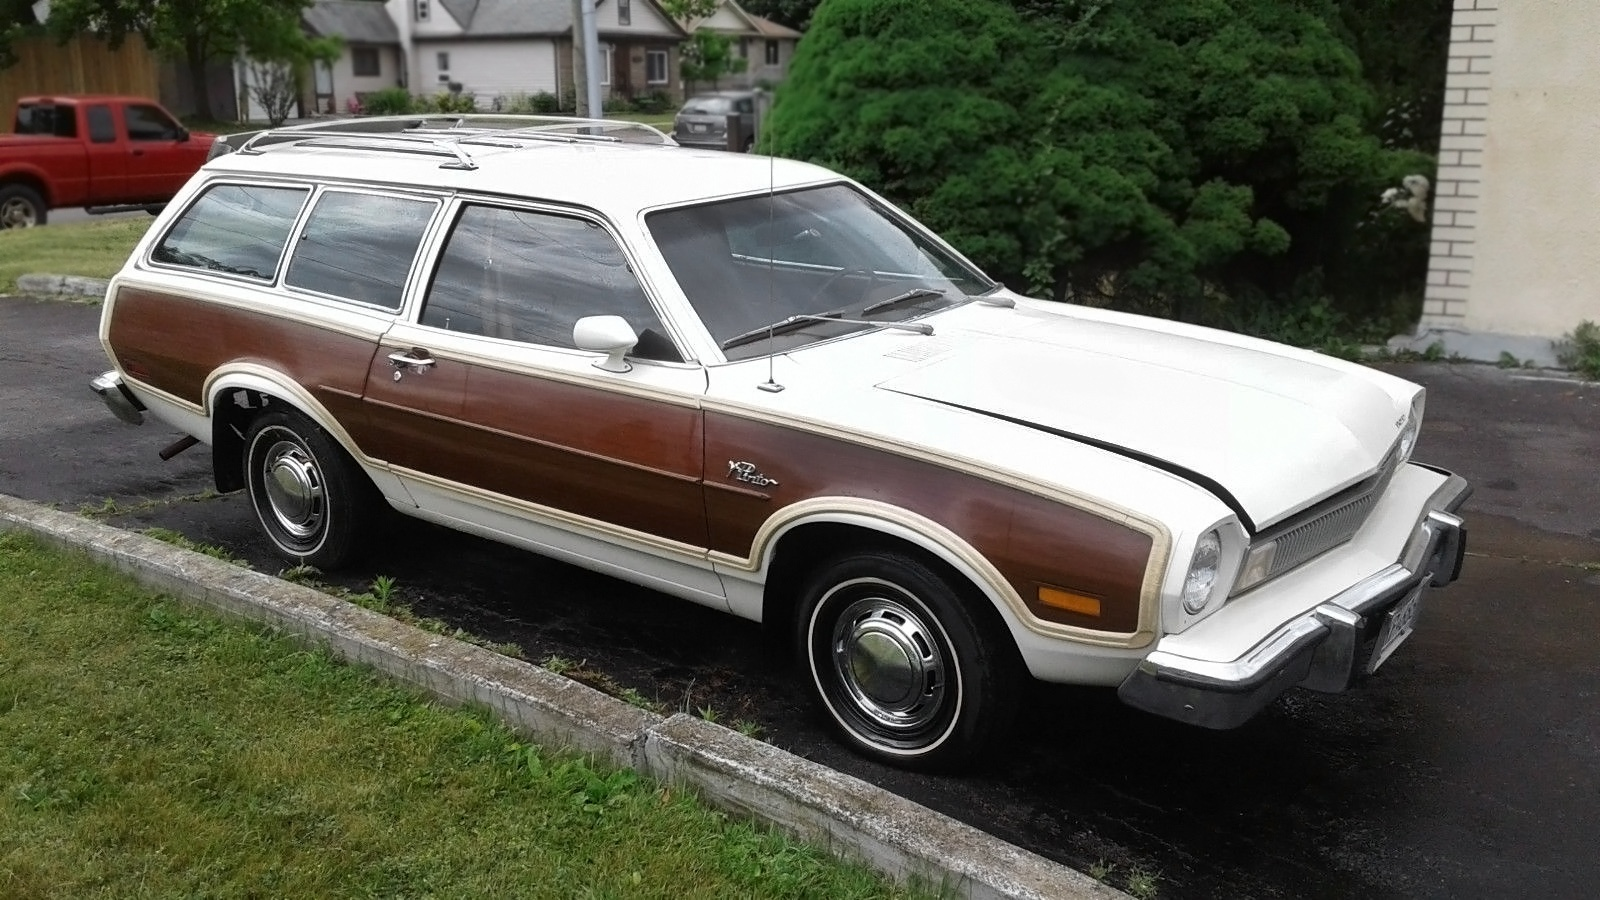 We love fords past present and future july 2016 071216 barn finds 1974 ford pinto esquire wagon 1 publicscrutiny Images